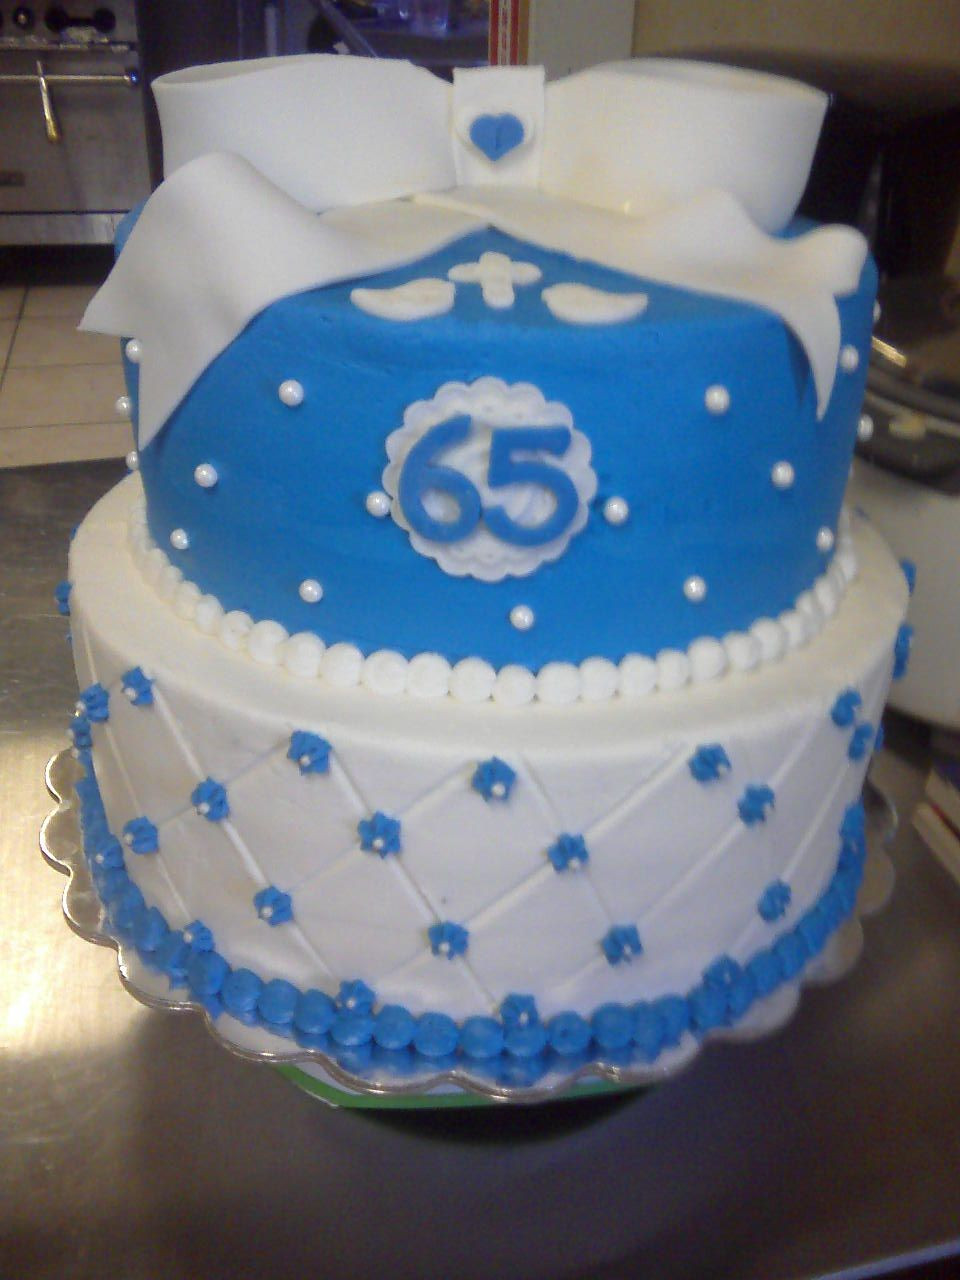 65Th Wedding Anniversary Cakes  65th Wedding Anniversary Cake for a very special family